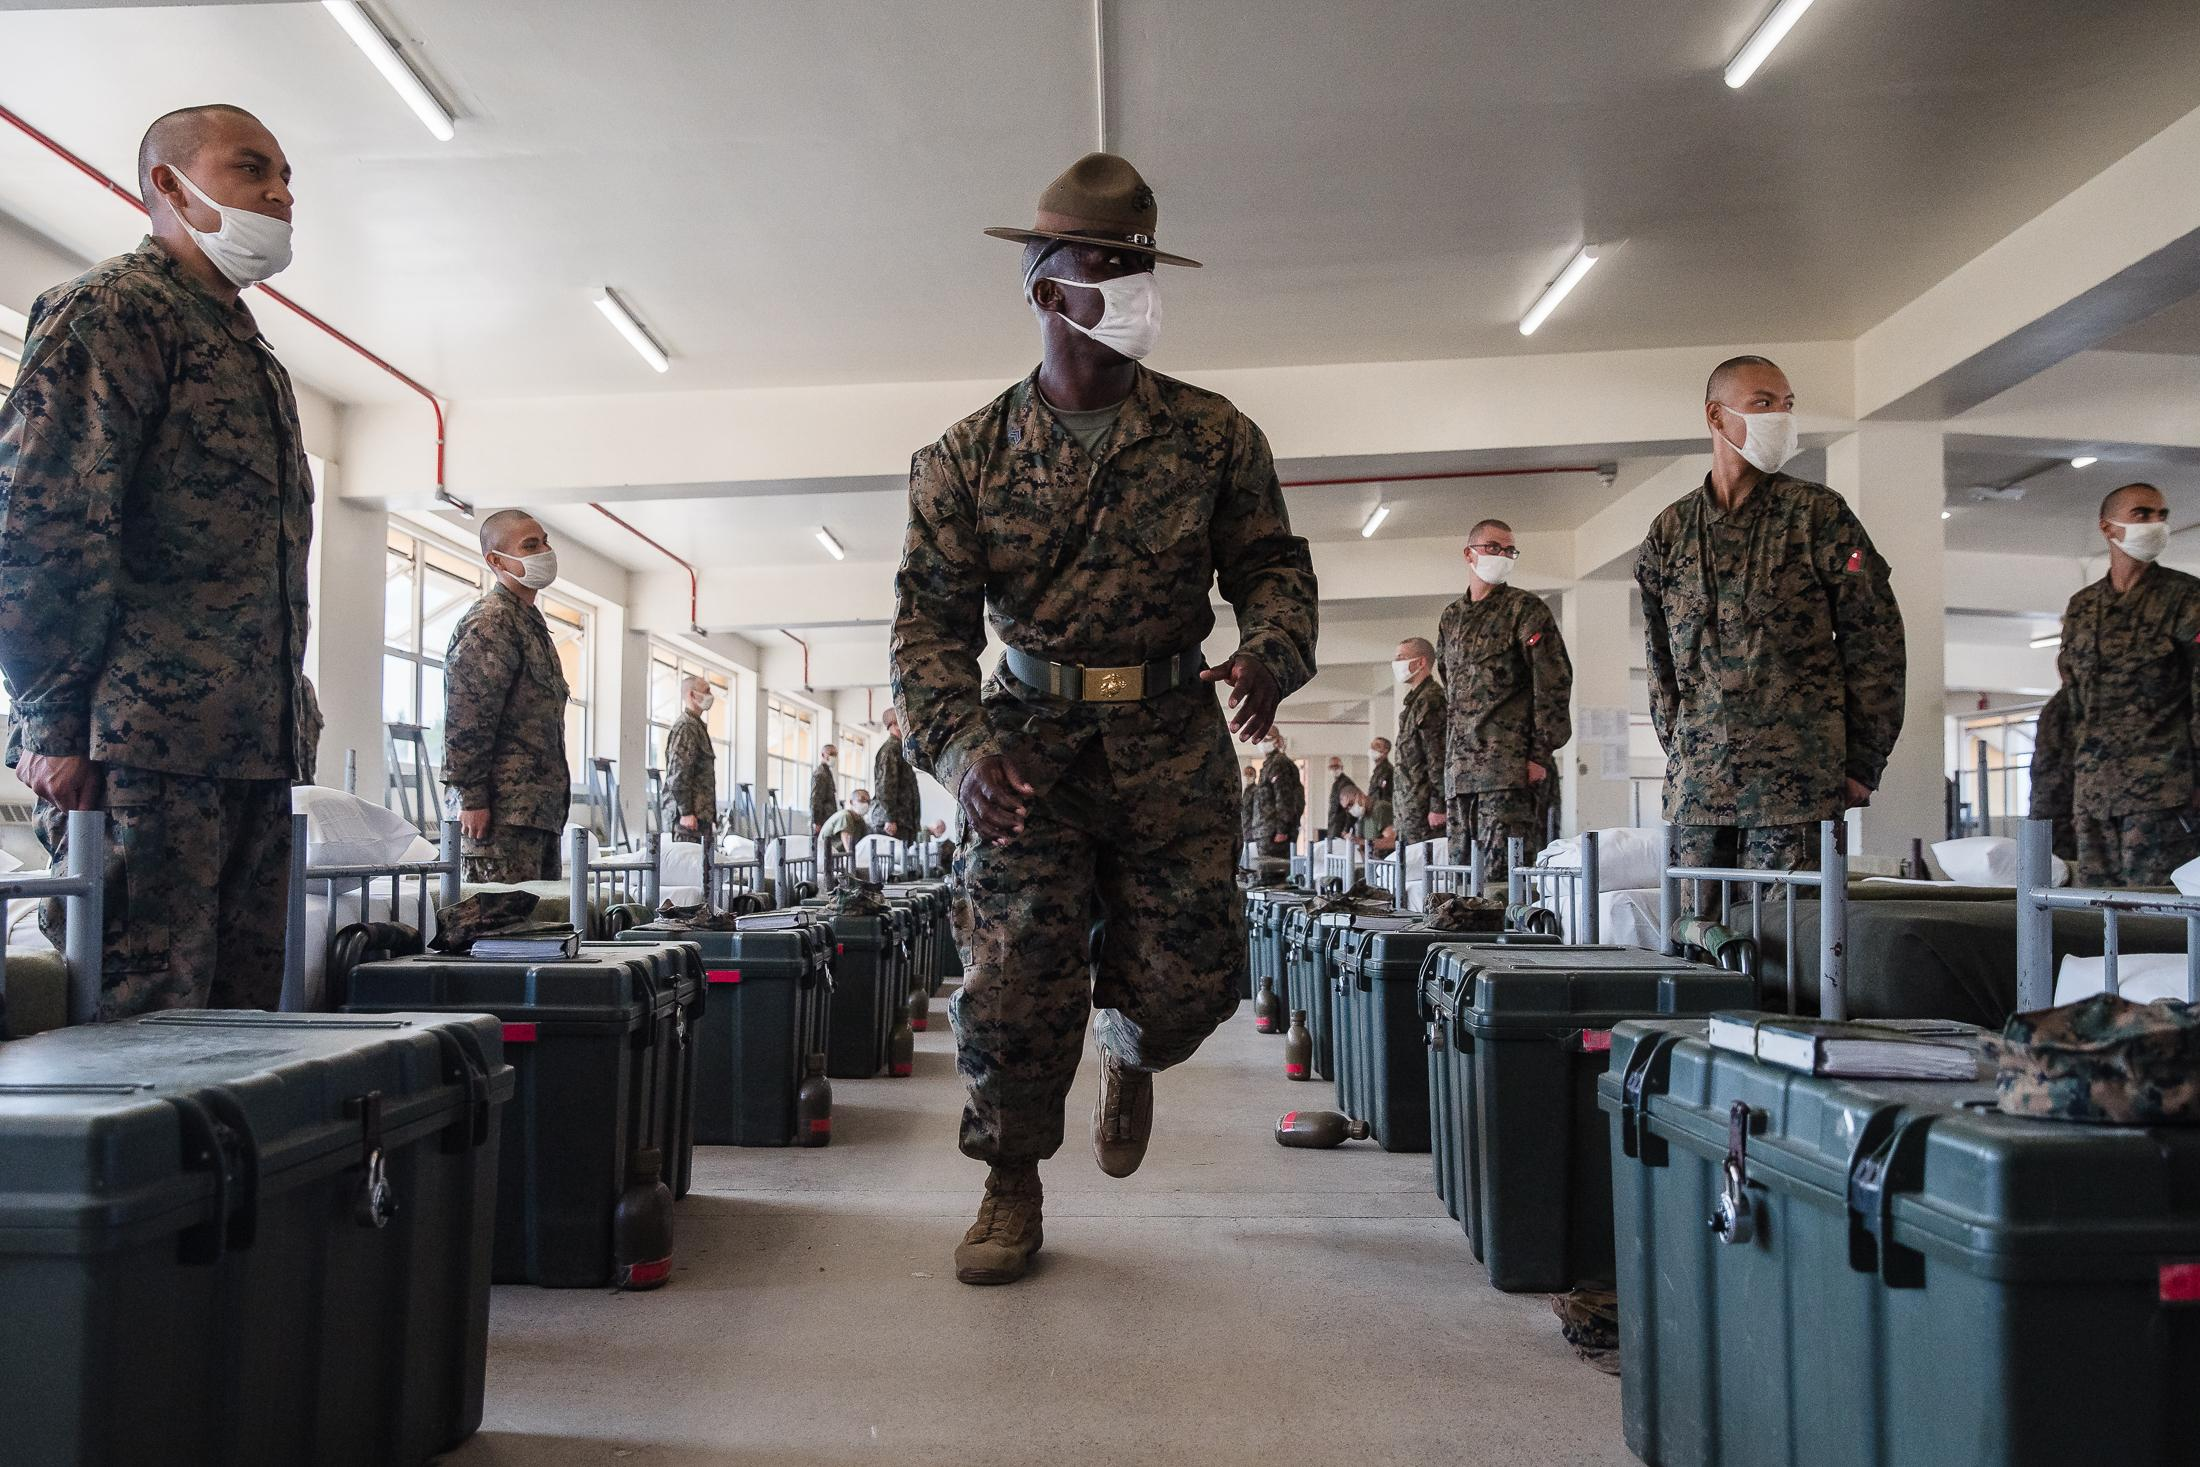 Sergeant Kirk Broxton walks through the barracks checking if beds are made correctly at the Marine Corps Recruit Depot.